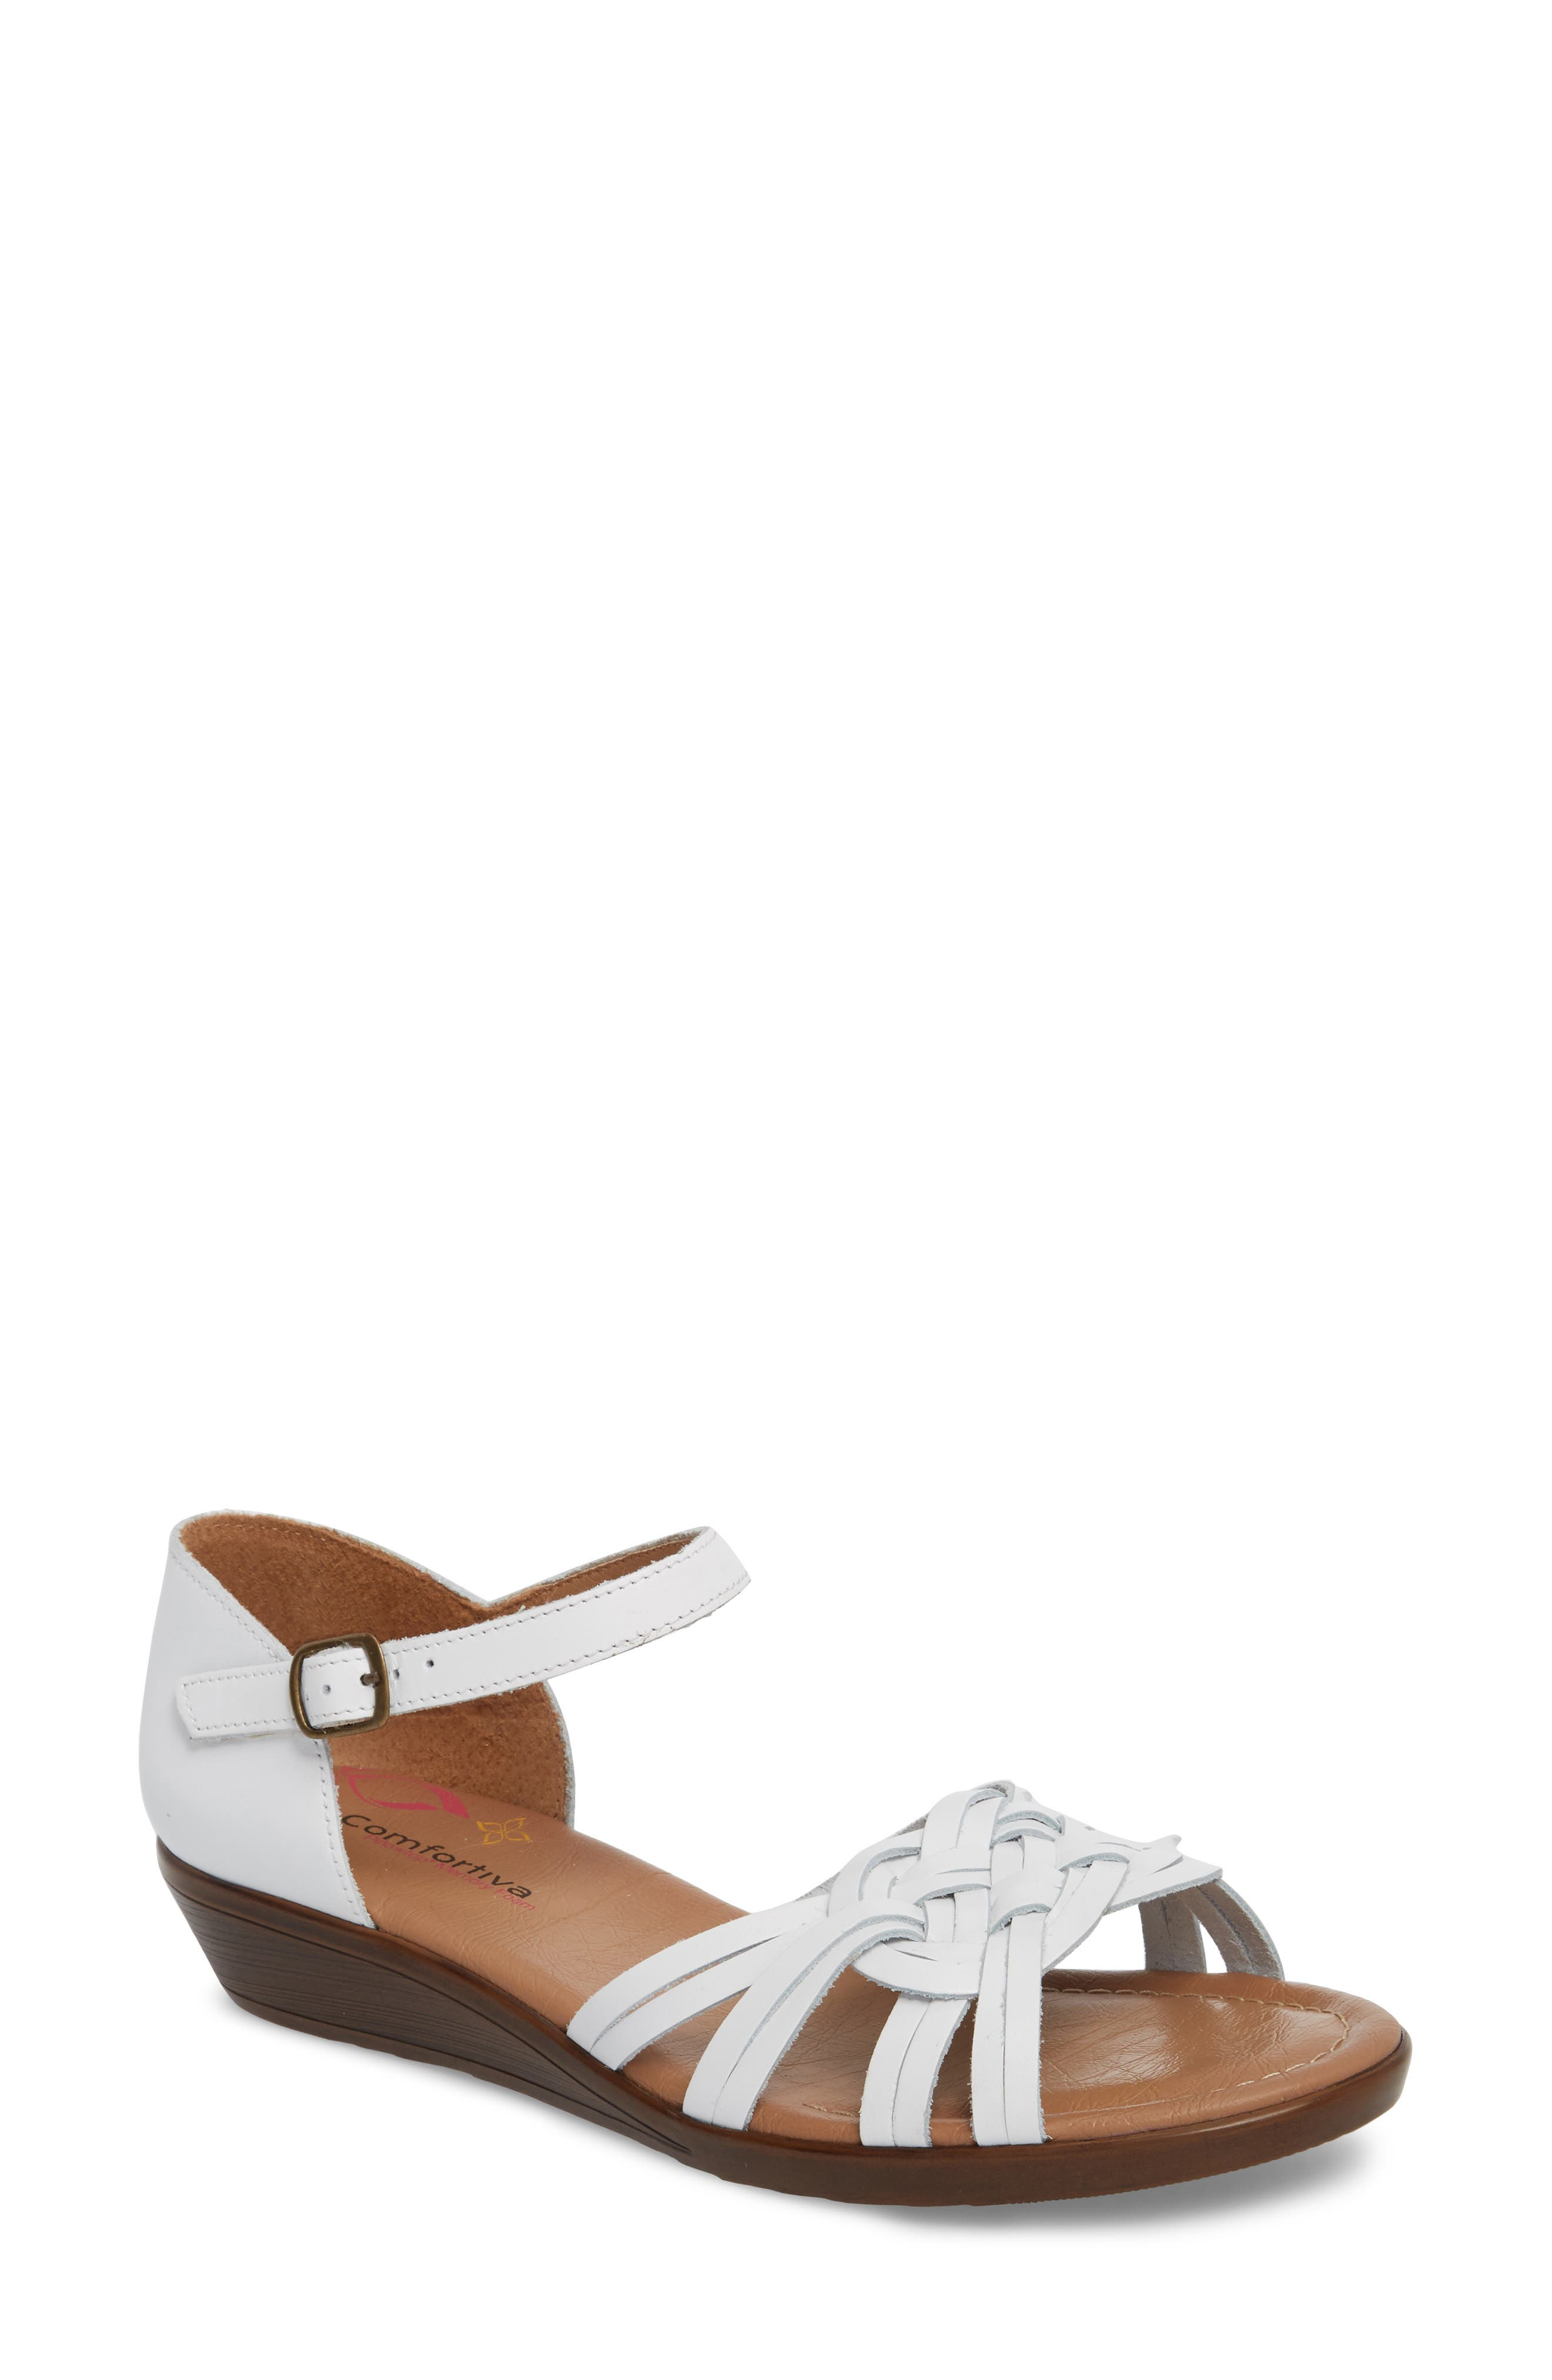 Fortune Sandal,                         Main,                         color, WHITE LEATHER